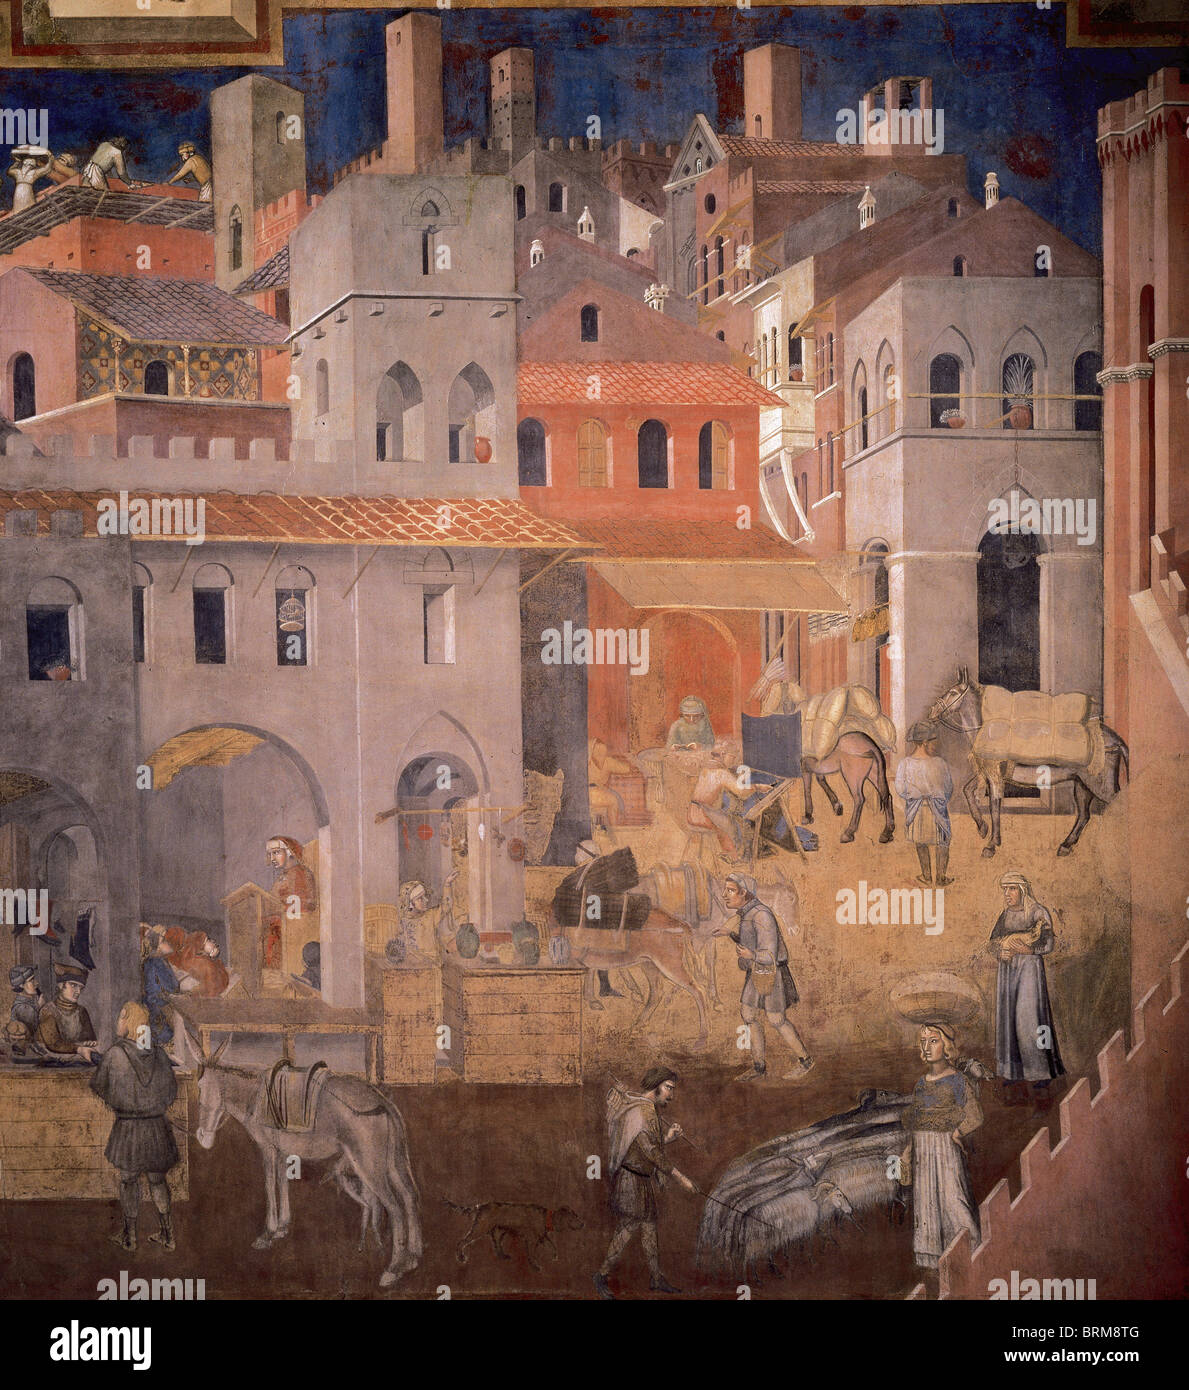 Ambrogio Lorenzetti (1280-1348). Effects of Good Government in the city. Fresco. Detail. Merchants in the walled - Stock Image